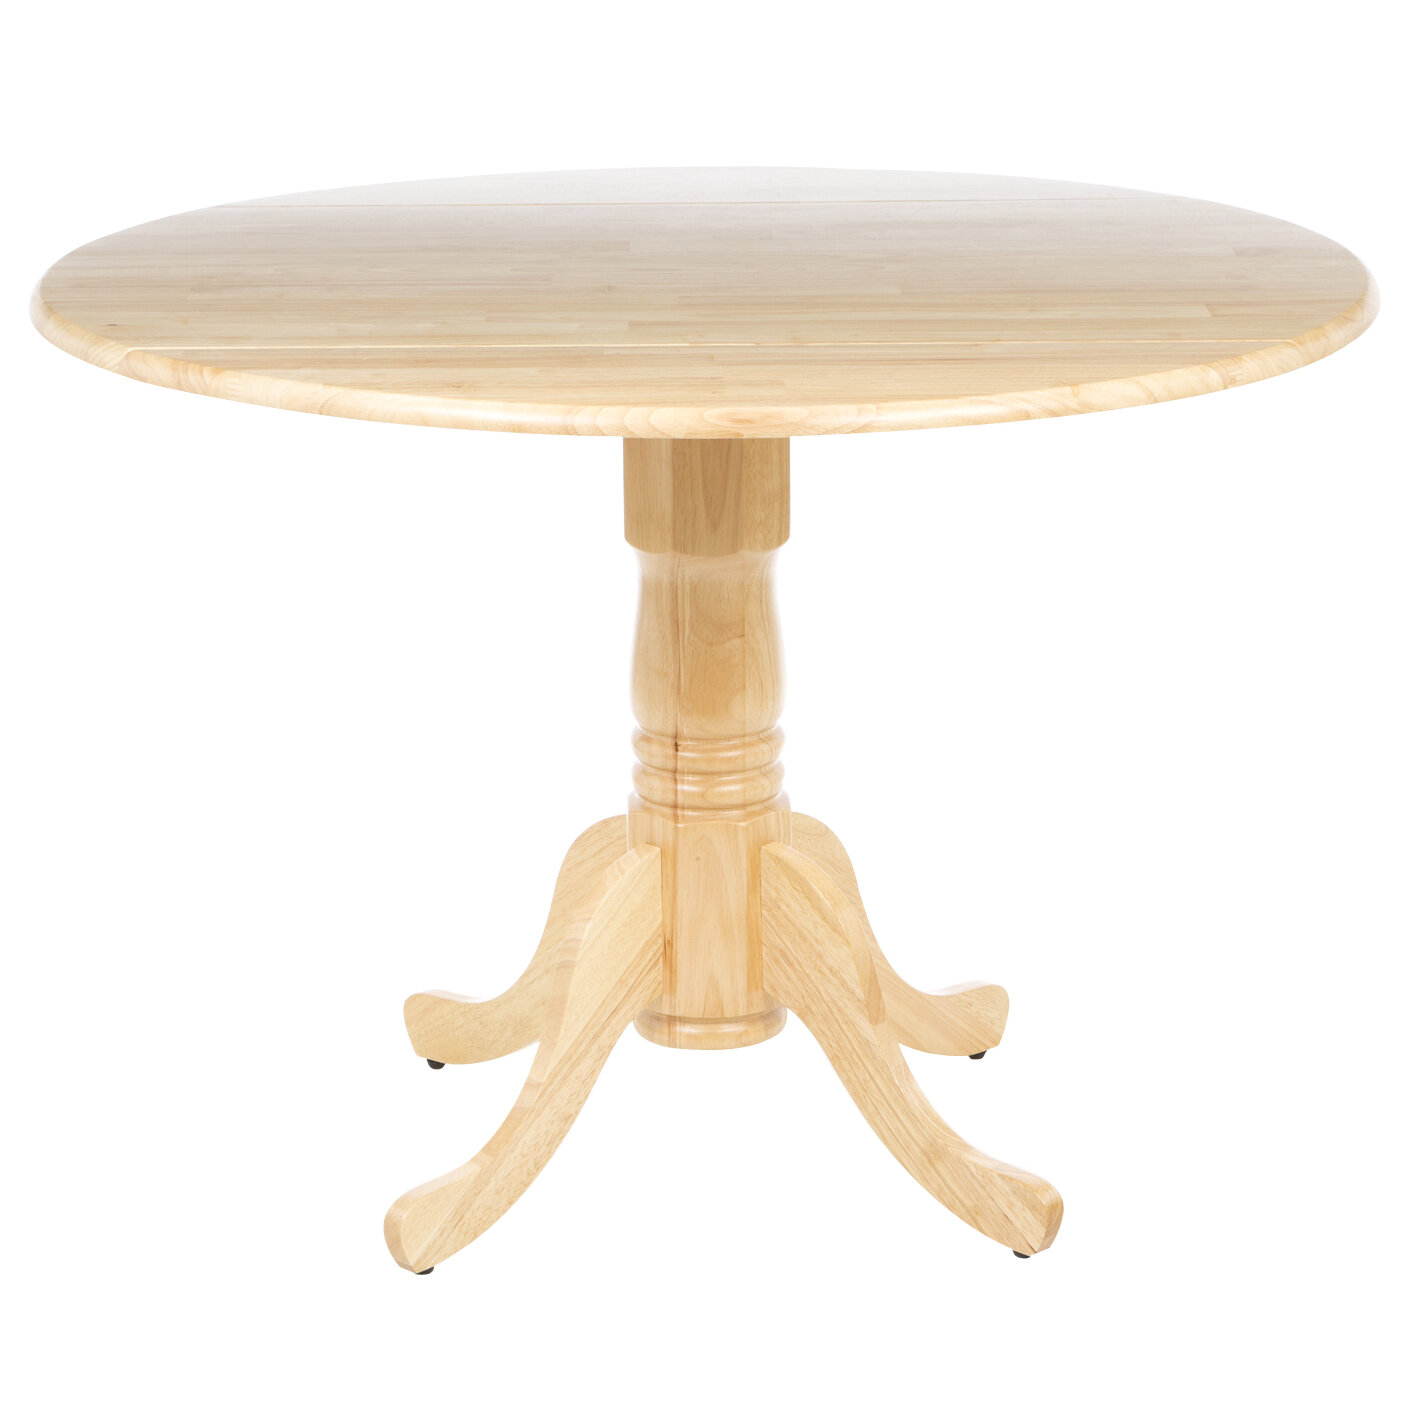 Drop Leaf Dining Tables Up To 50 Off Through 01 19 Wayfair